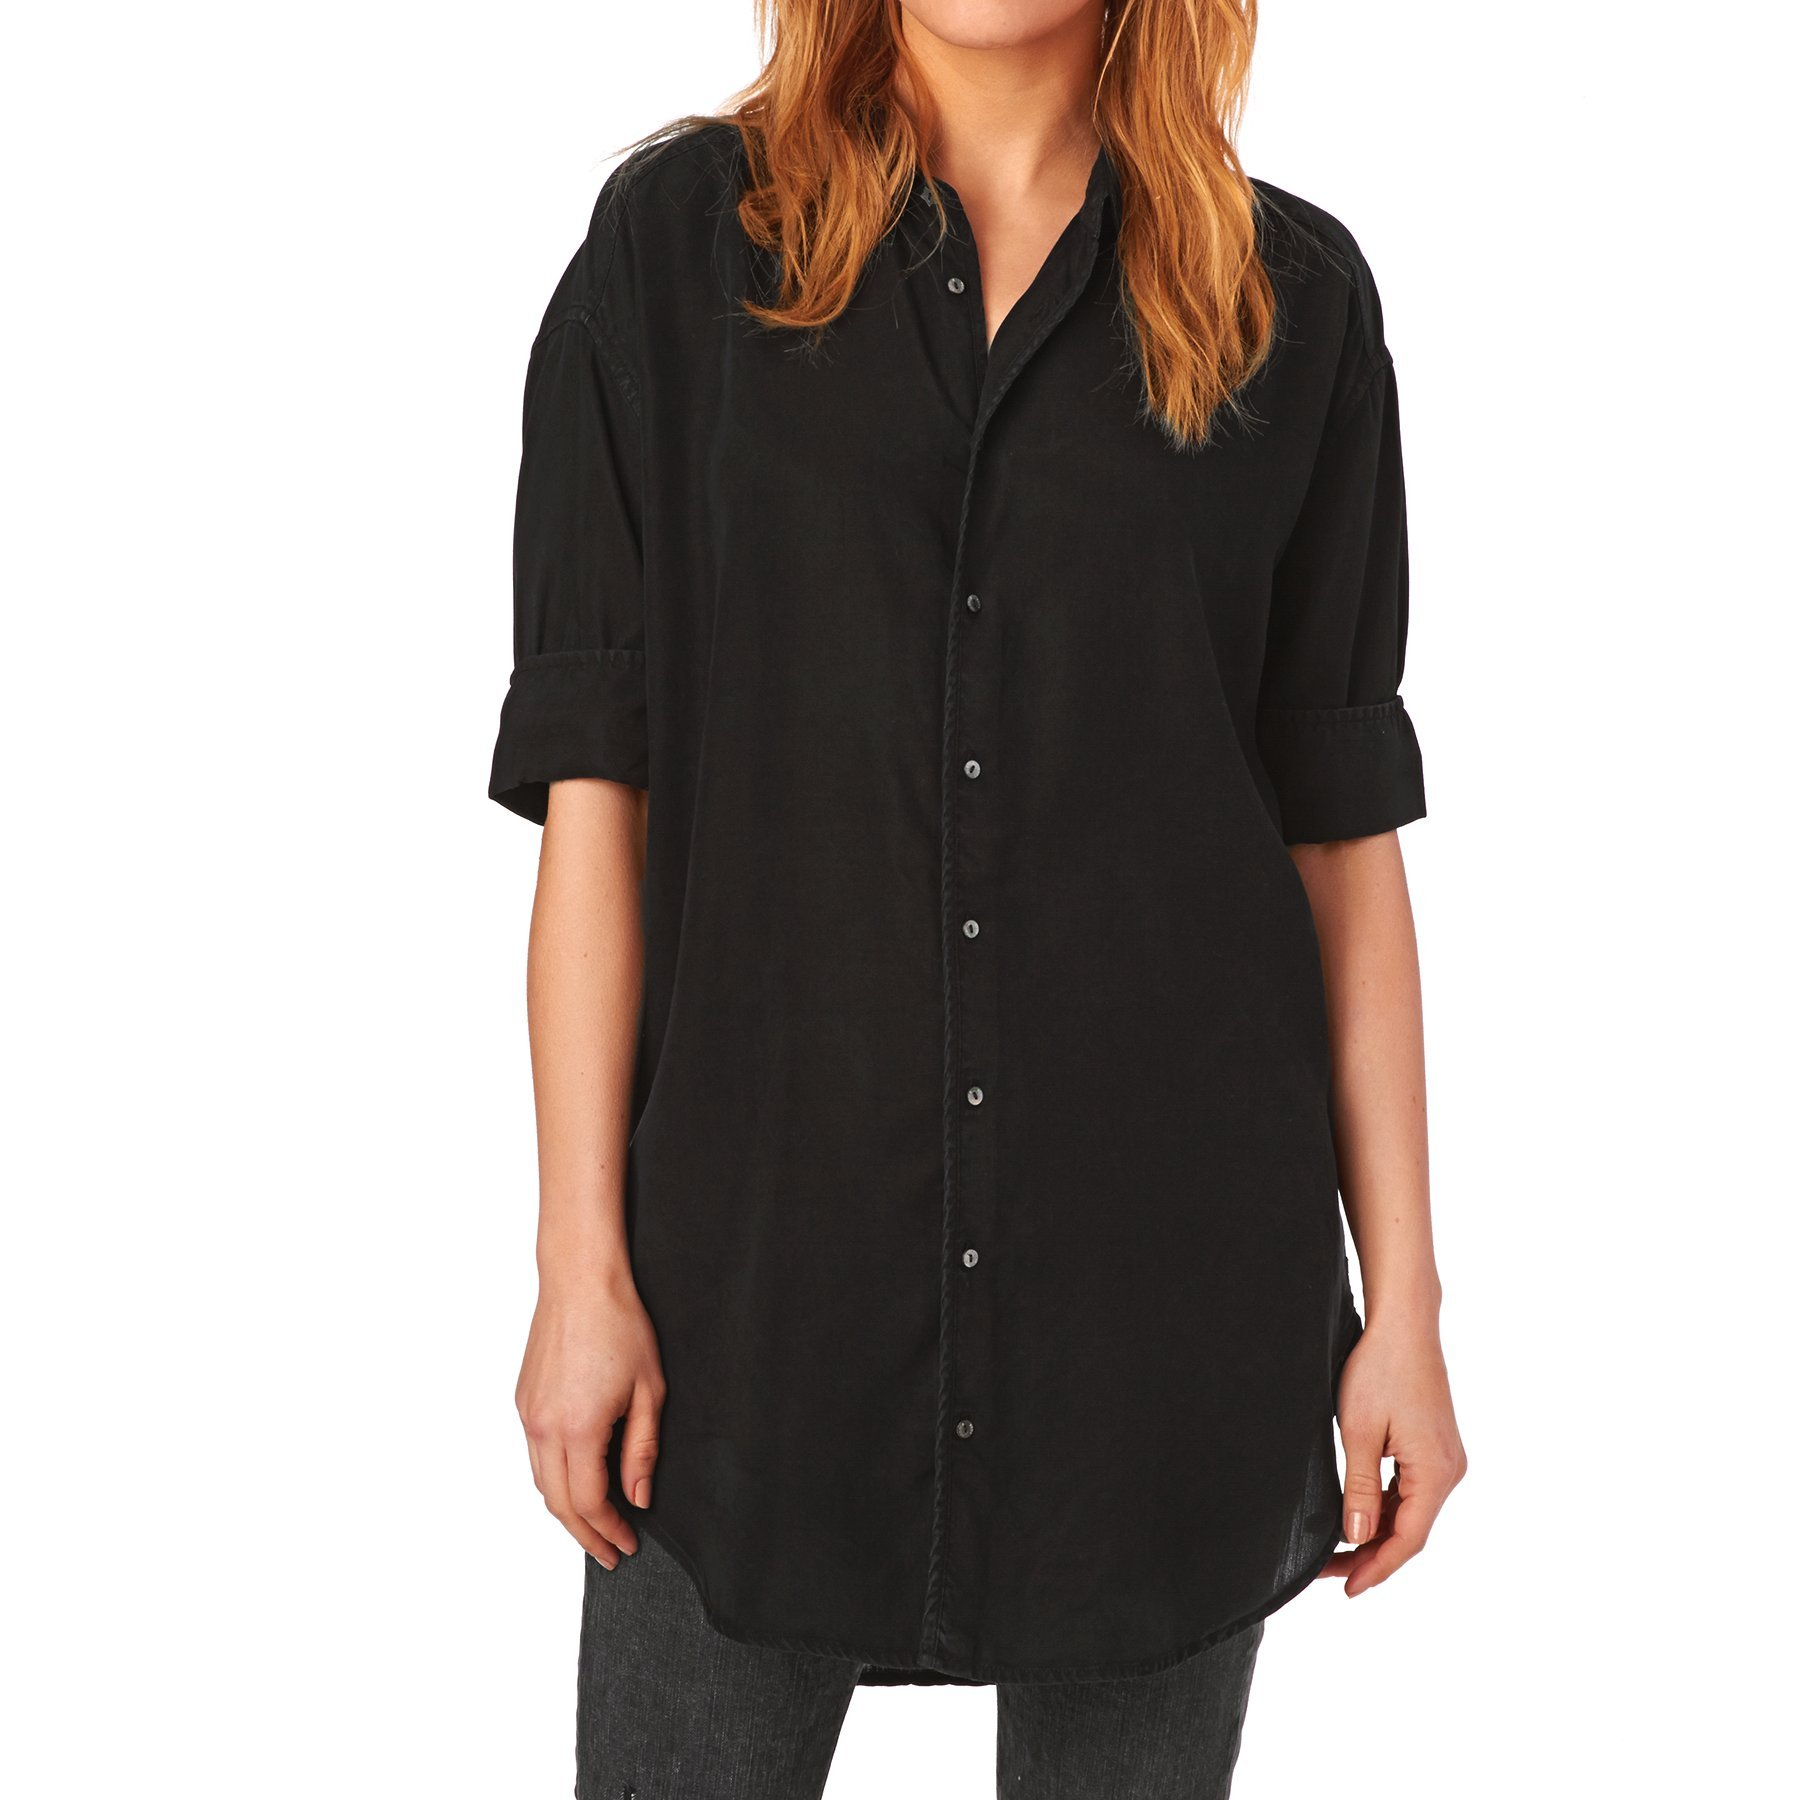 Maison Scotch Shirts Drapey Summer Shirt - Black